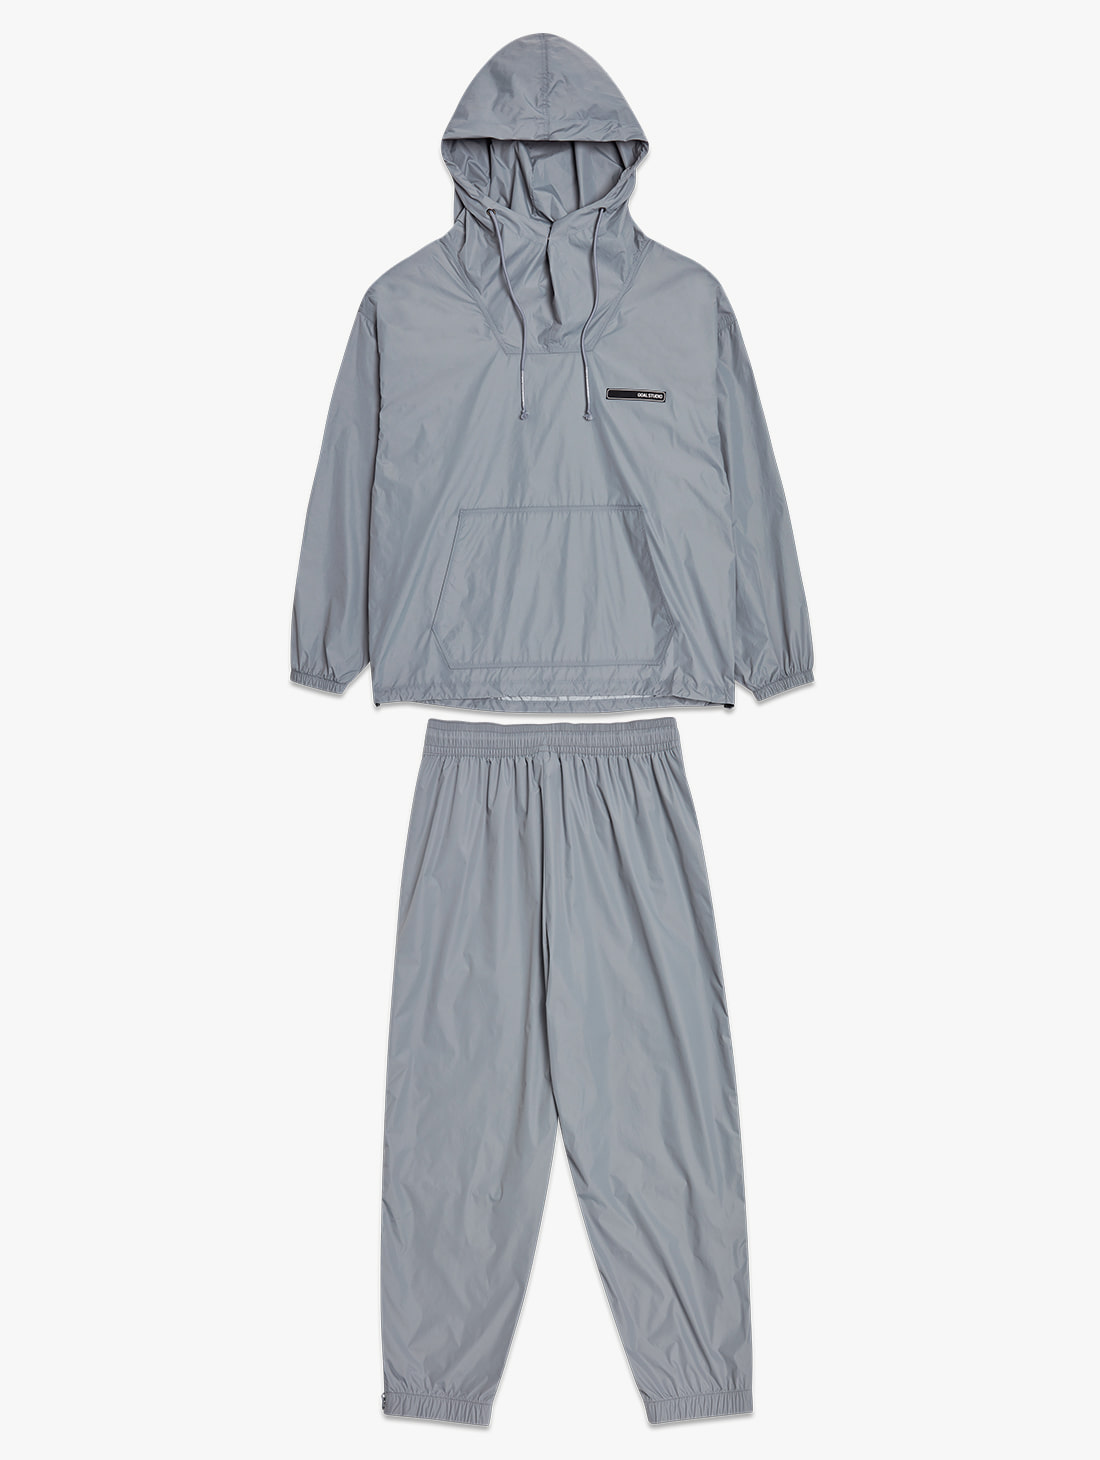 [10% OFF] OVERSIZED ANORAK JACKET&VENTILATED WARMUP PANTS SET